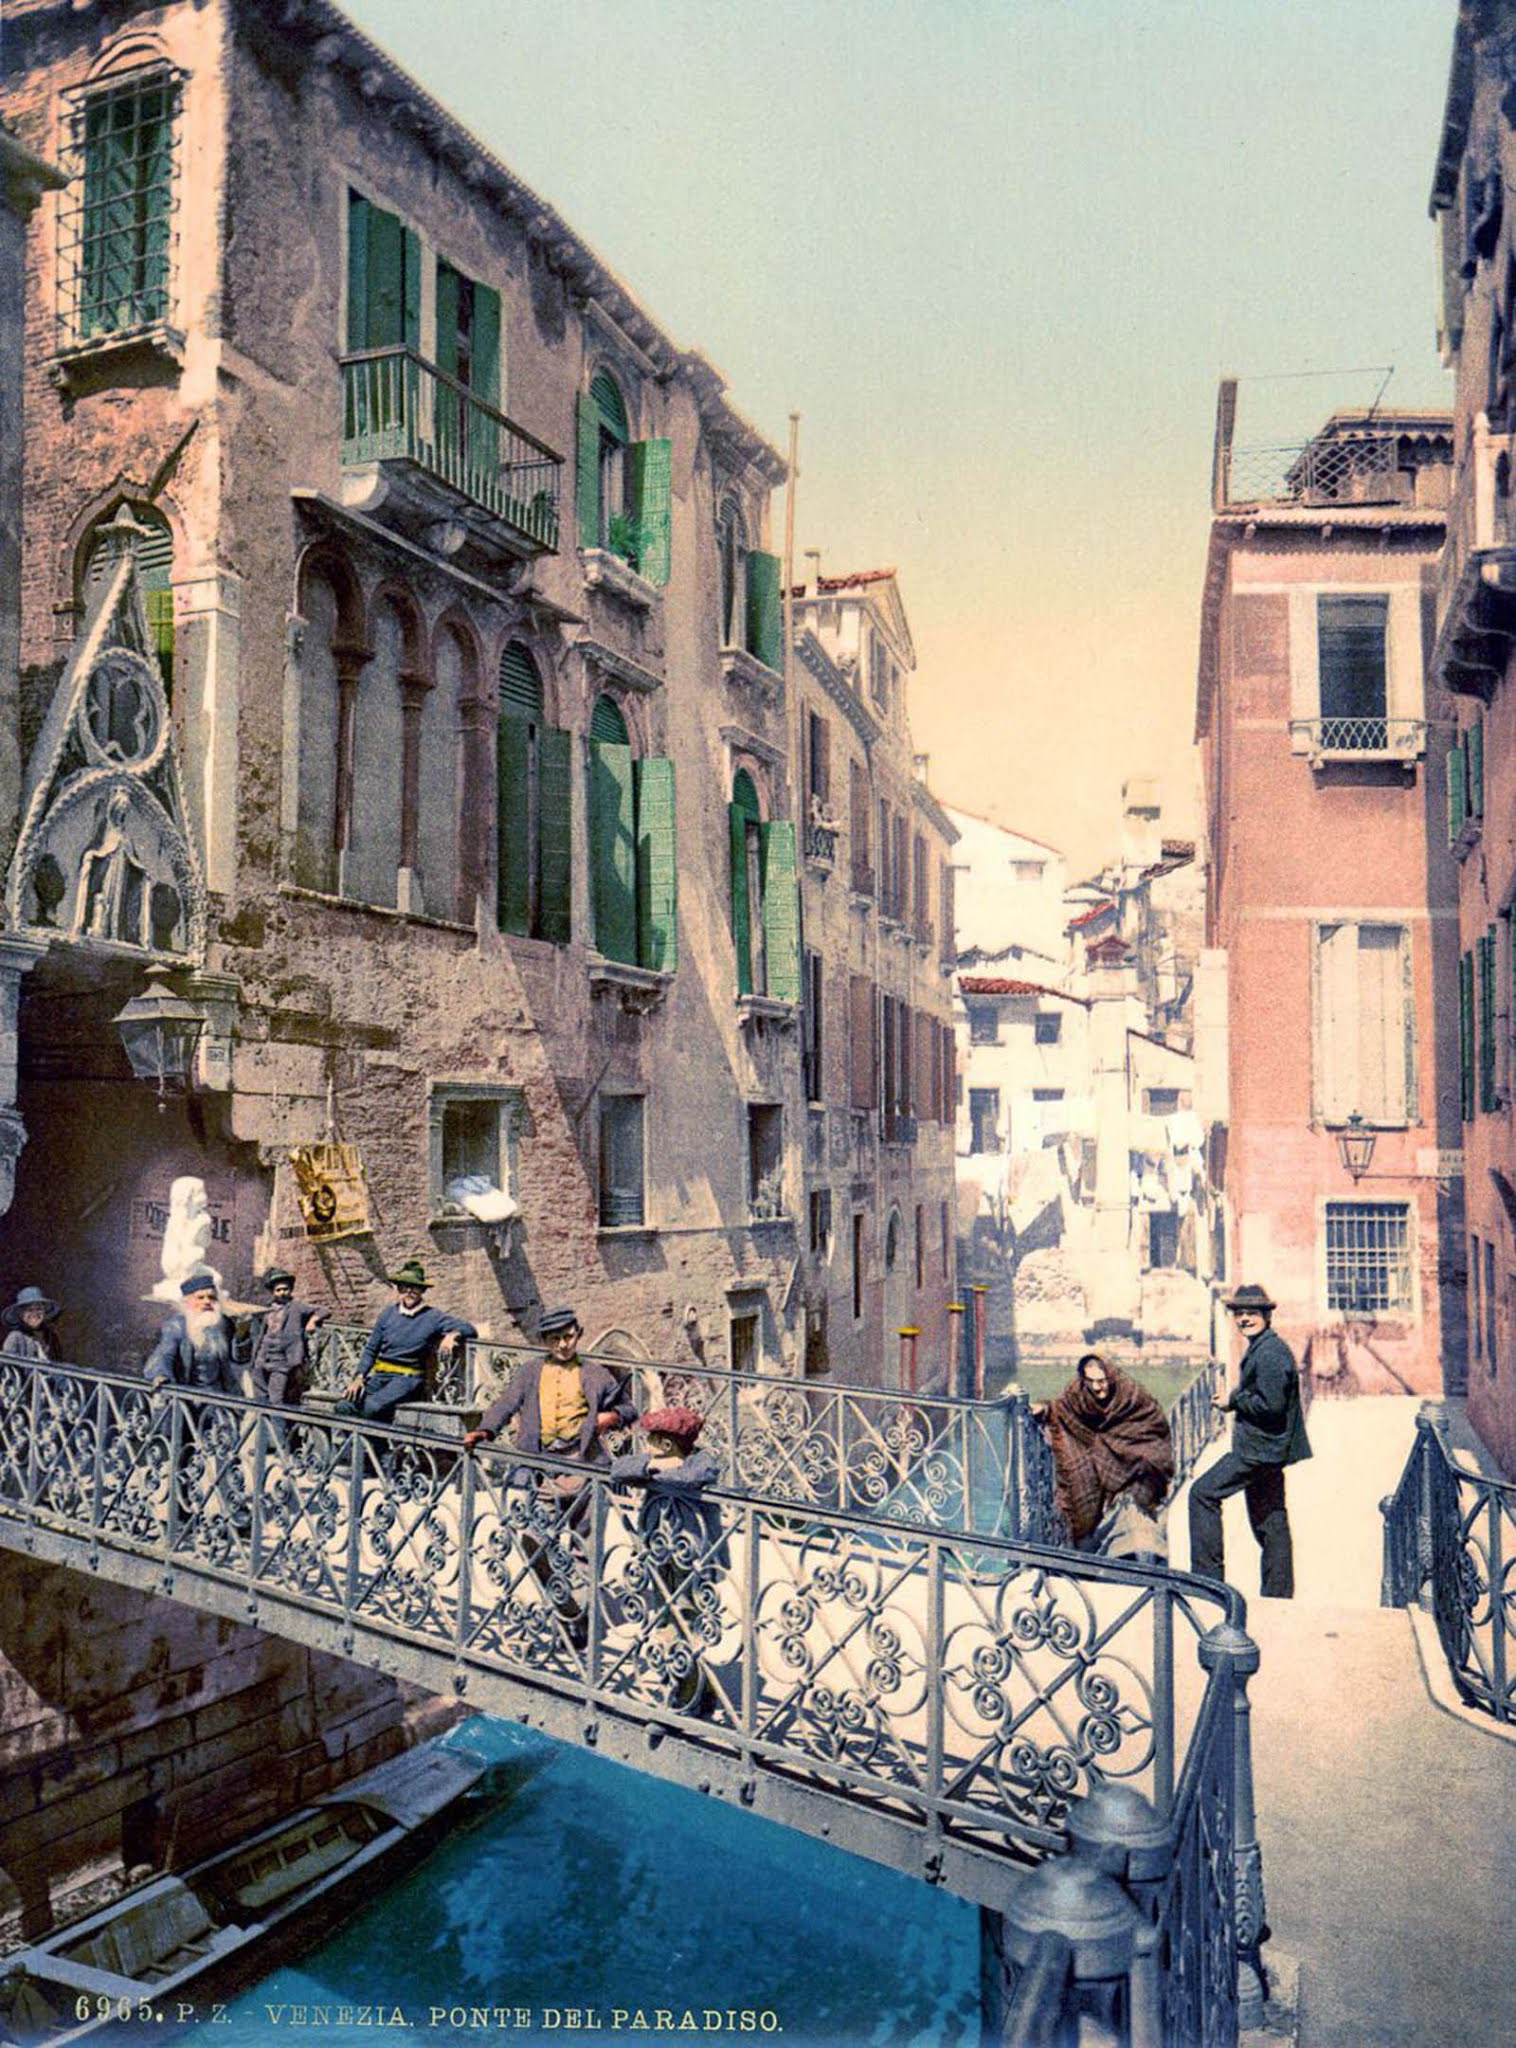 venice-in-beautiful-old-color-images-1890_17.jpg